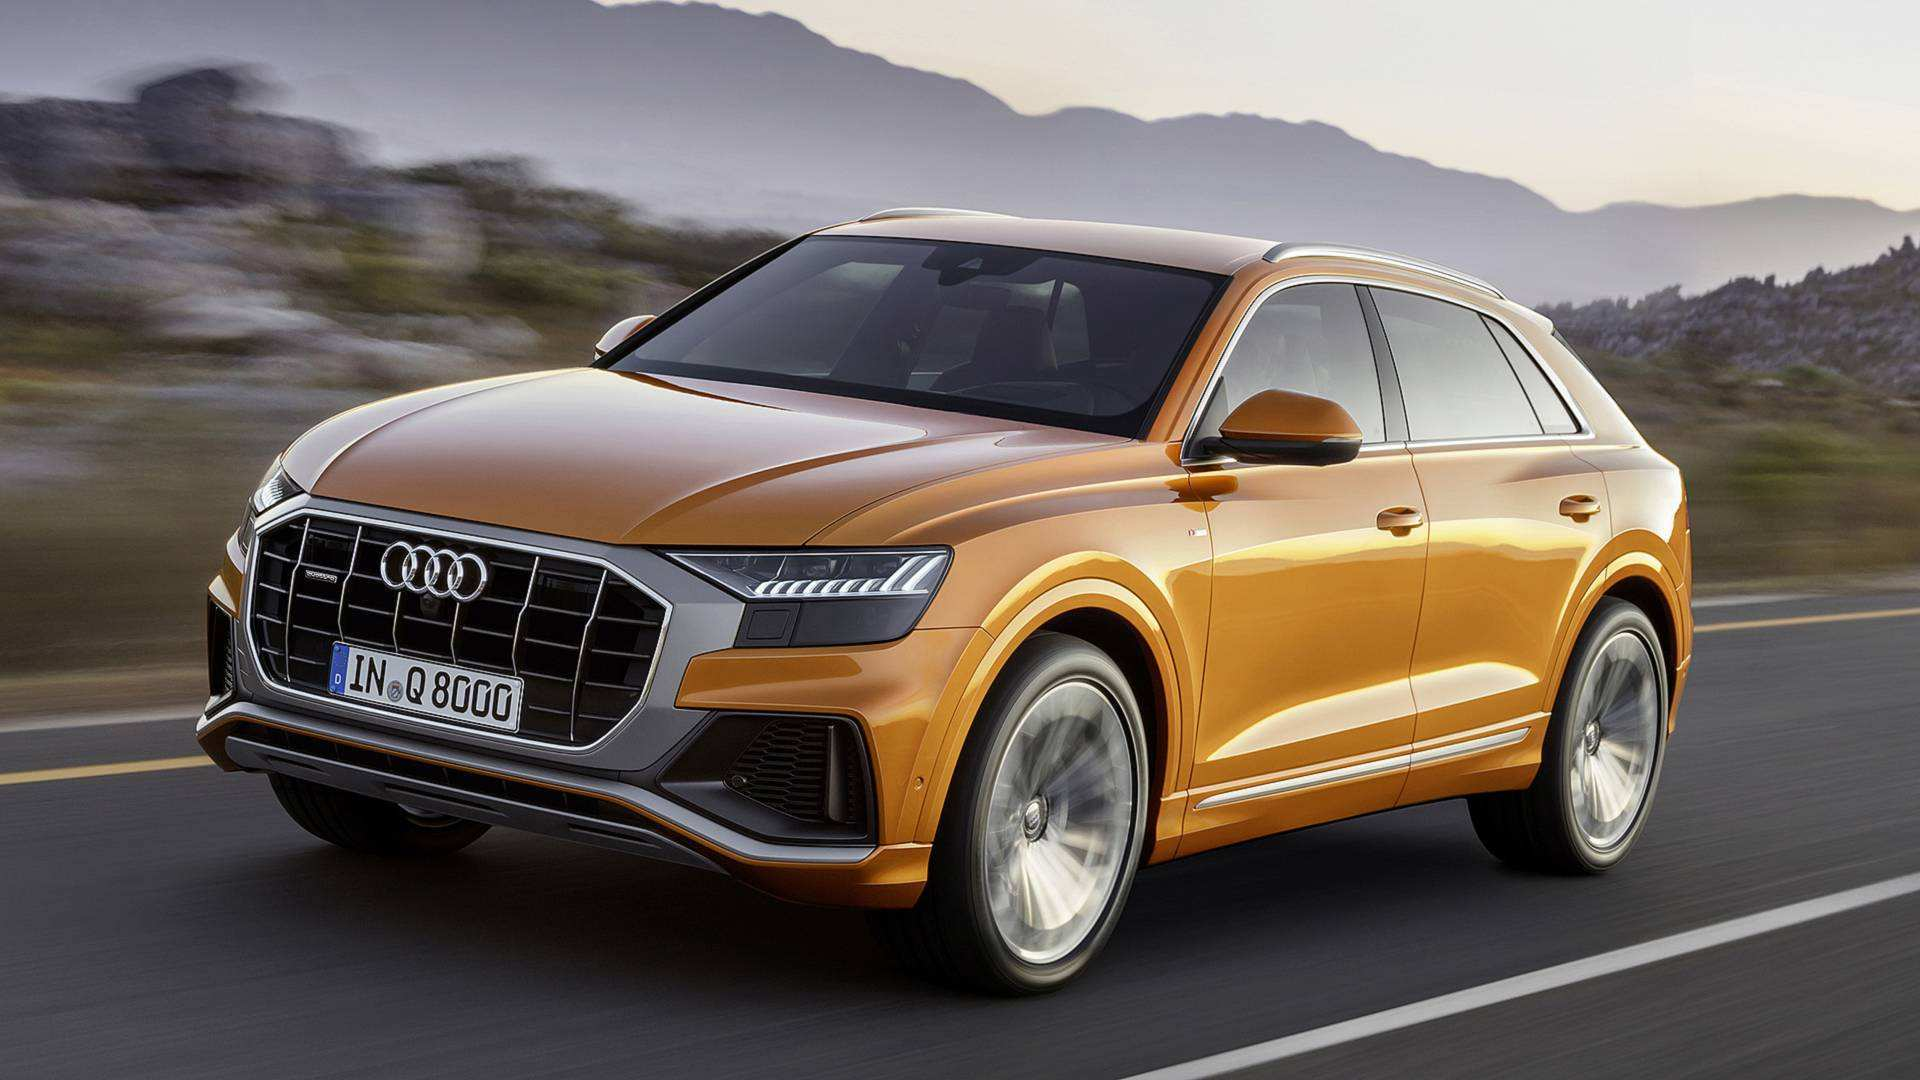 40 Gallery of New Fastest Audi 2019 Concept Research New by New Fastest Audi 2019 Concept